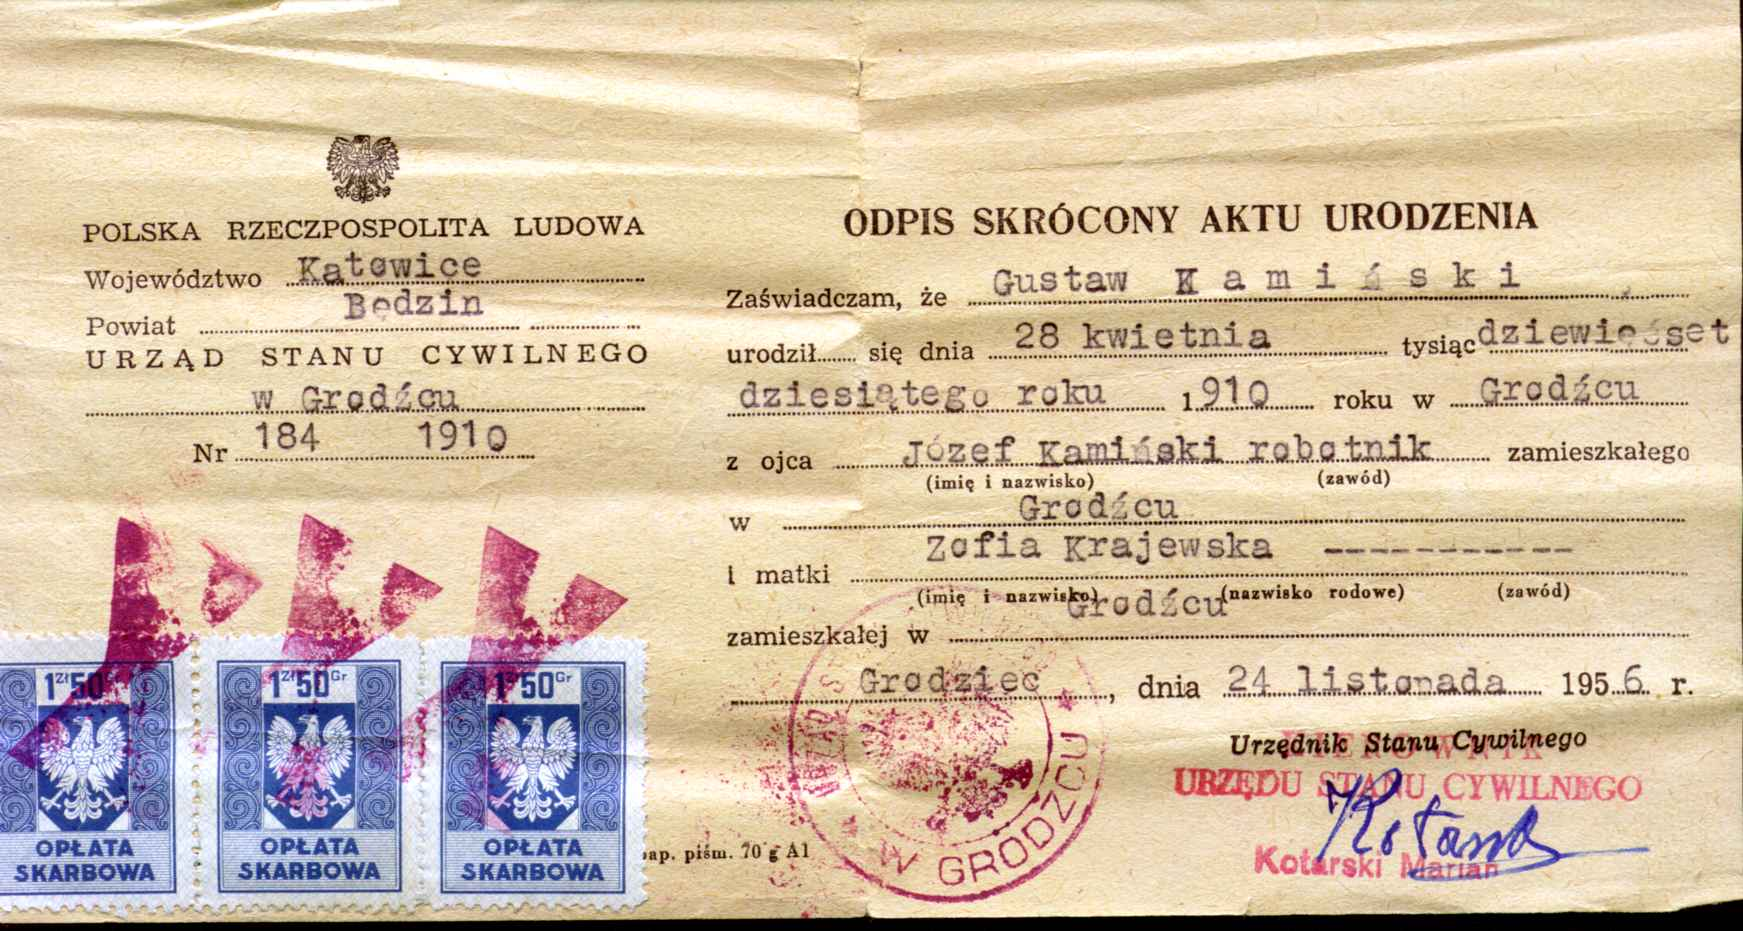 Descendants of kazimierz kaminski and magdalena wikla noted events in his life were birth baptismal certificate aiddatafo Image collections